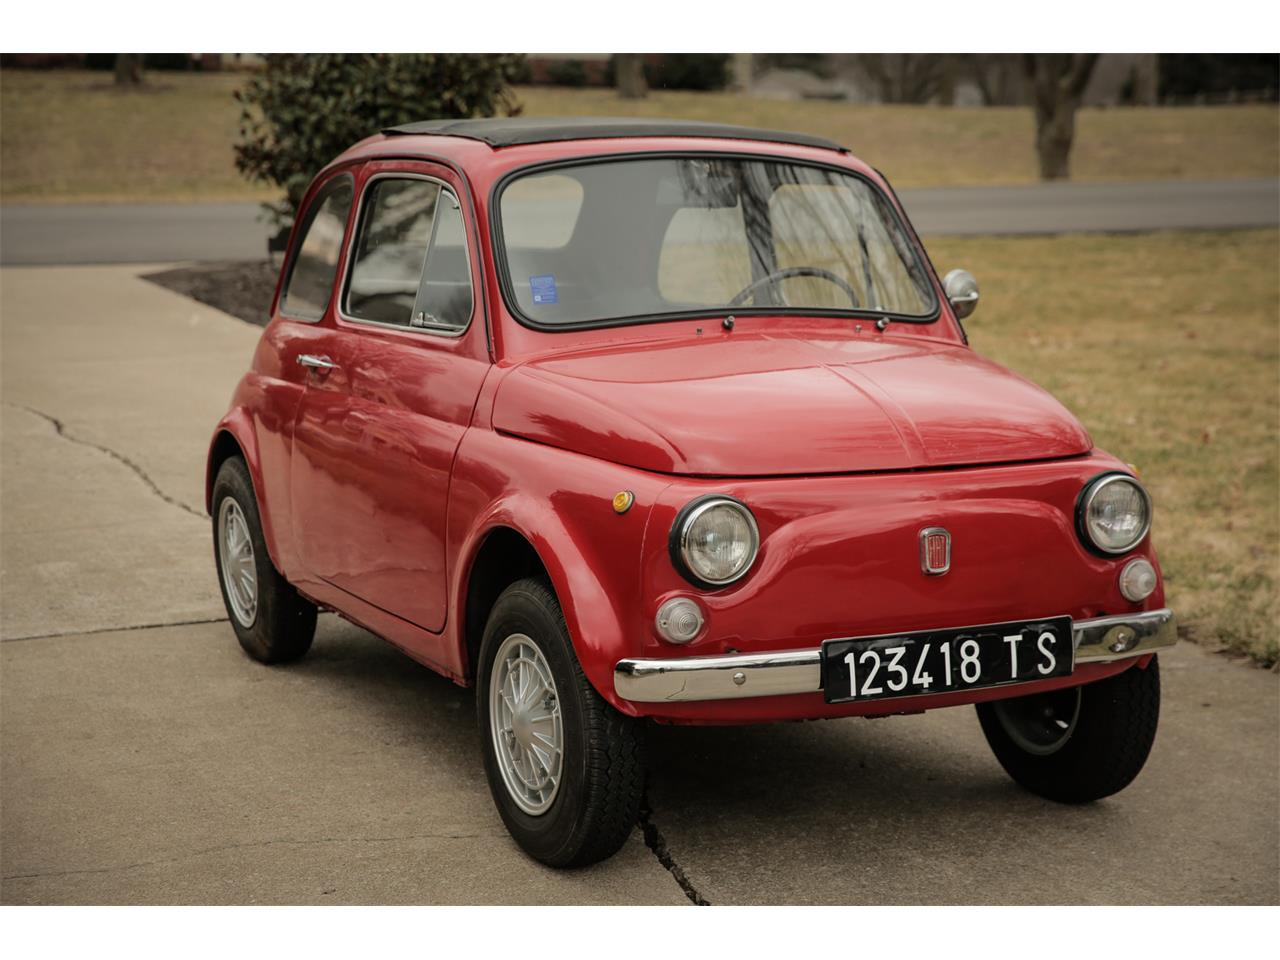 Large Picture of Classic 1970 Fiat 500 located in Olathe Kansas - $15,500.00 - H5C0